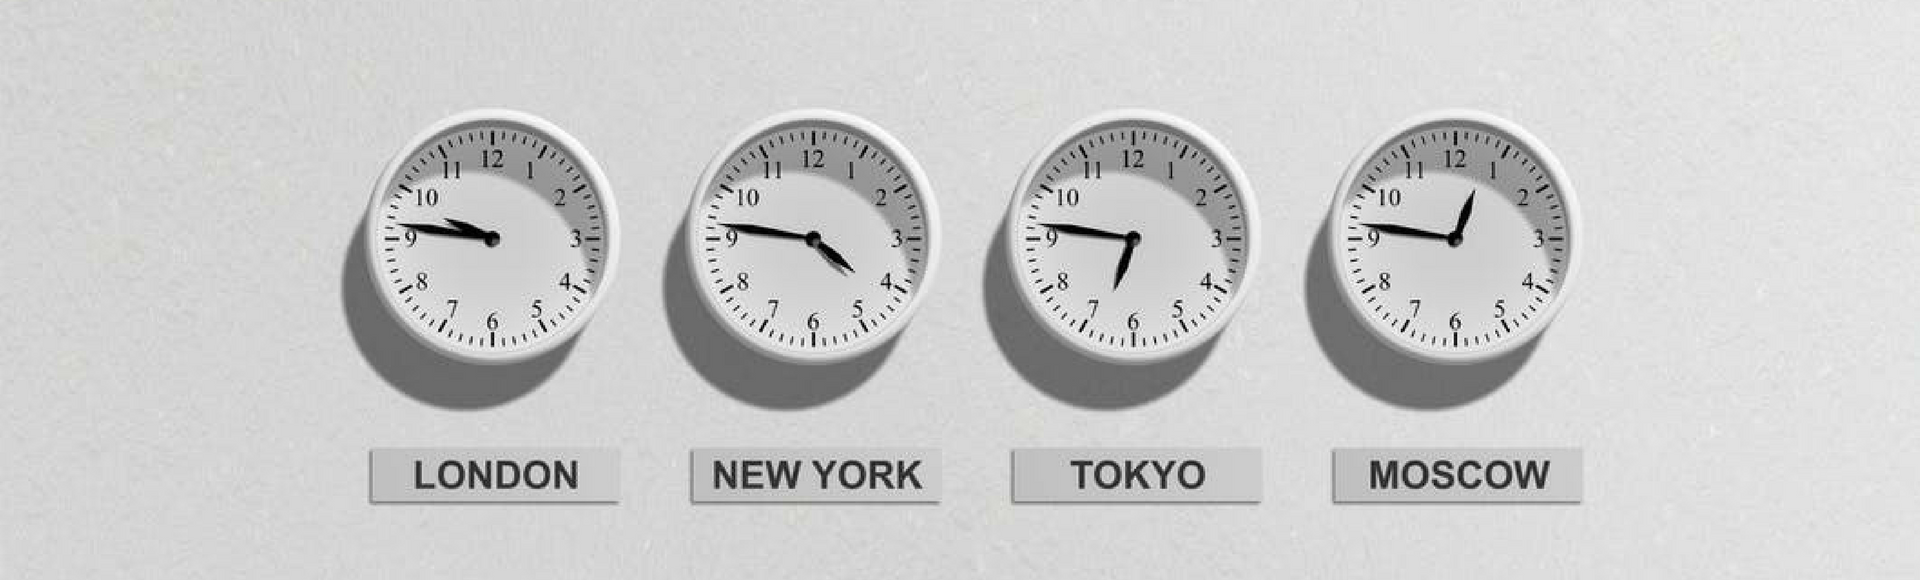 White time clocks displaying time in four different regions mounted on white wall representing saving time with global workforce by using an online time clock system.